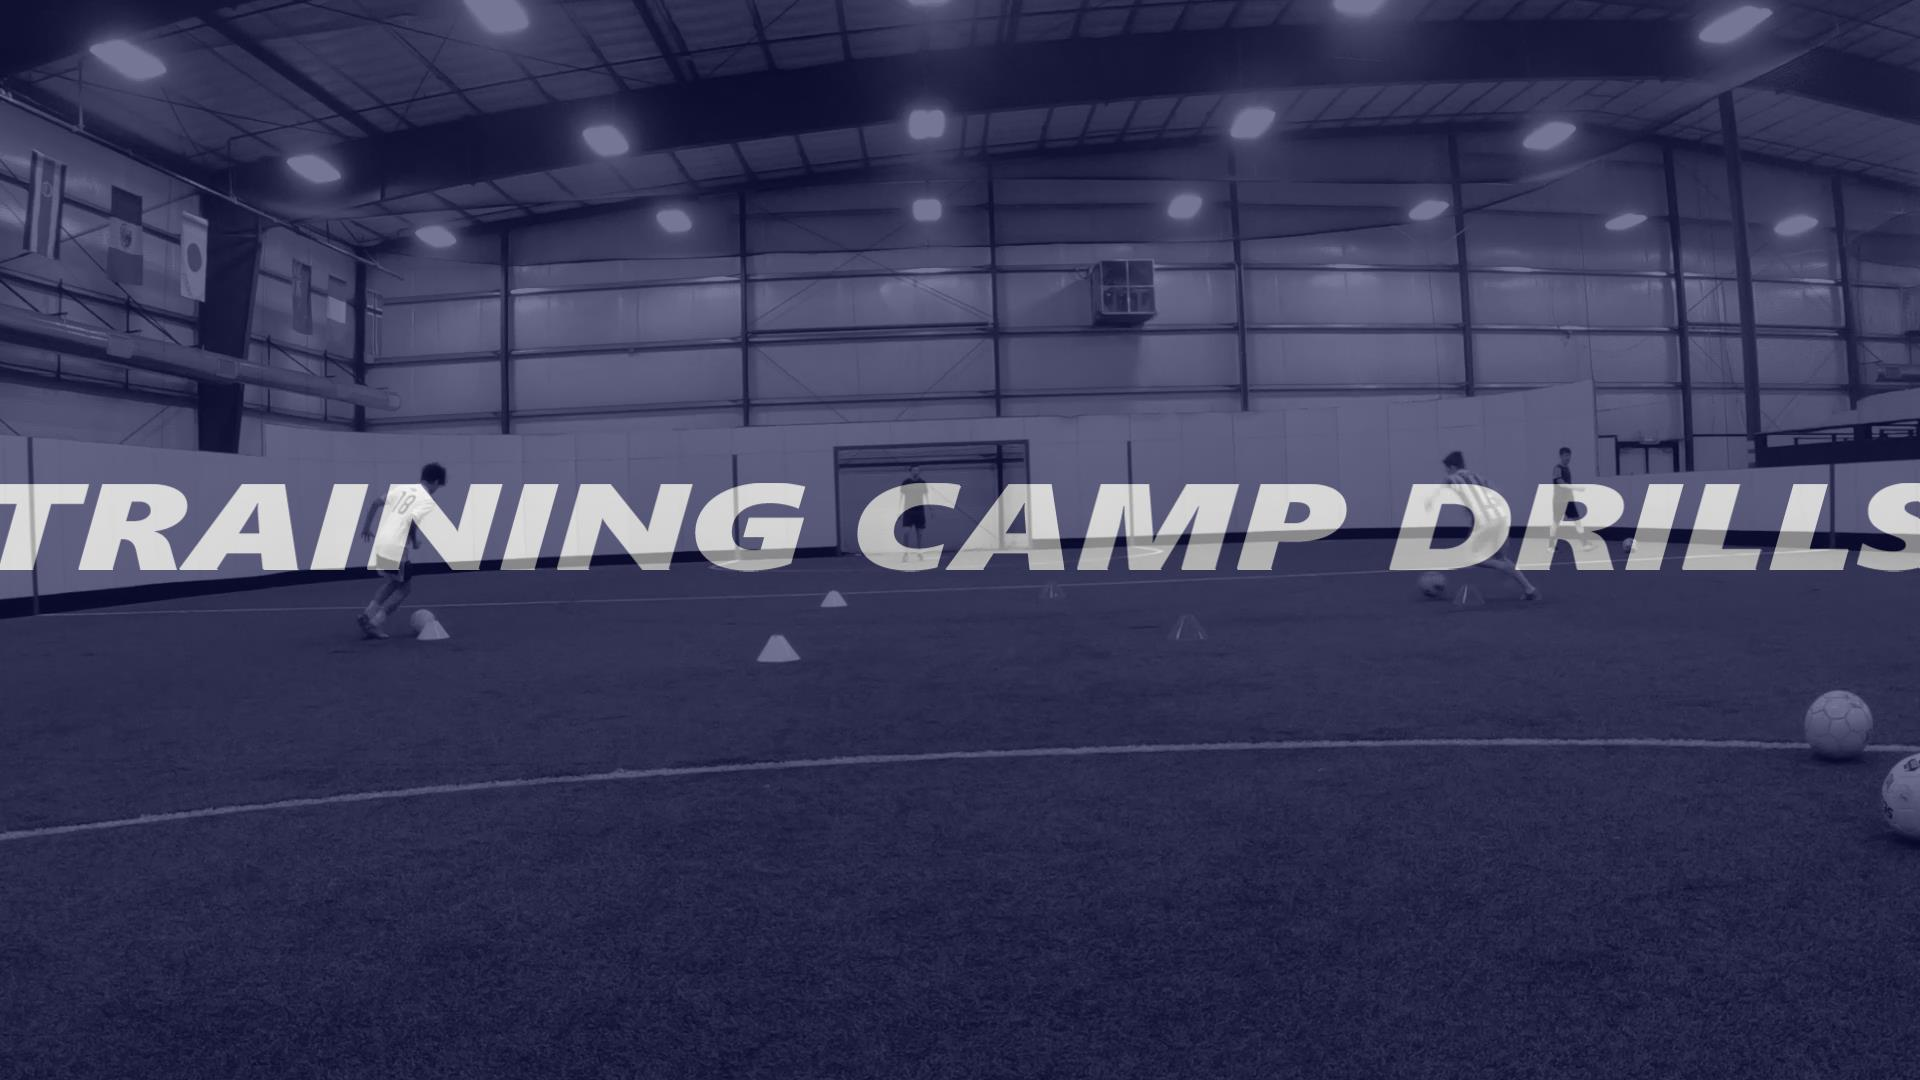 Soccer Training Camp Drills